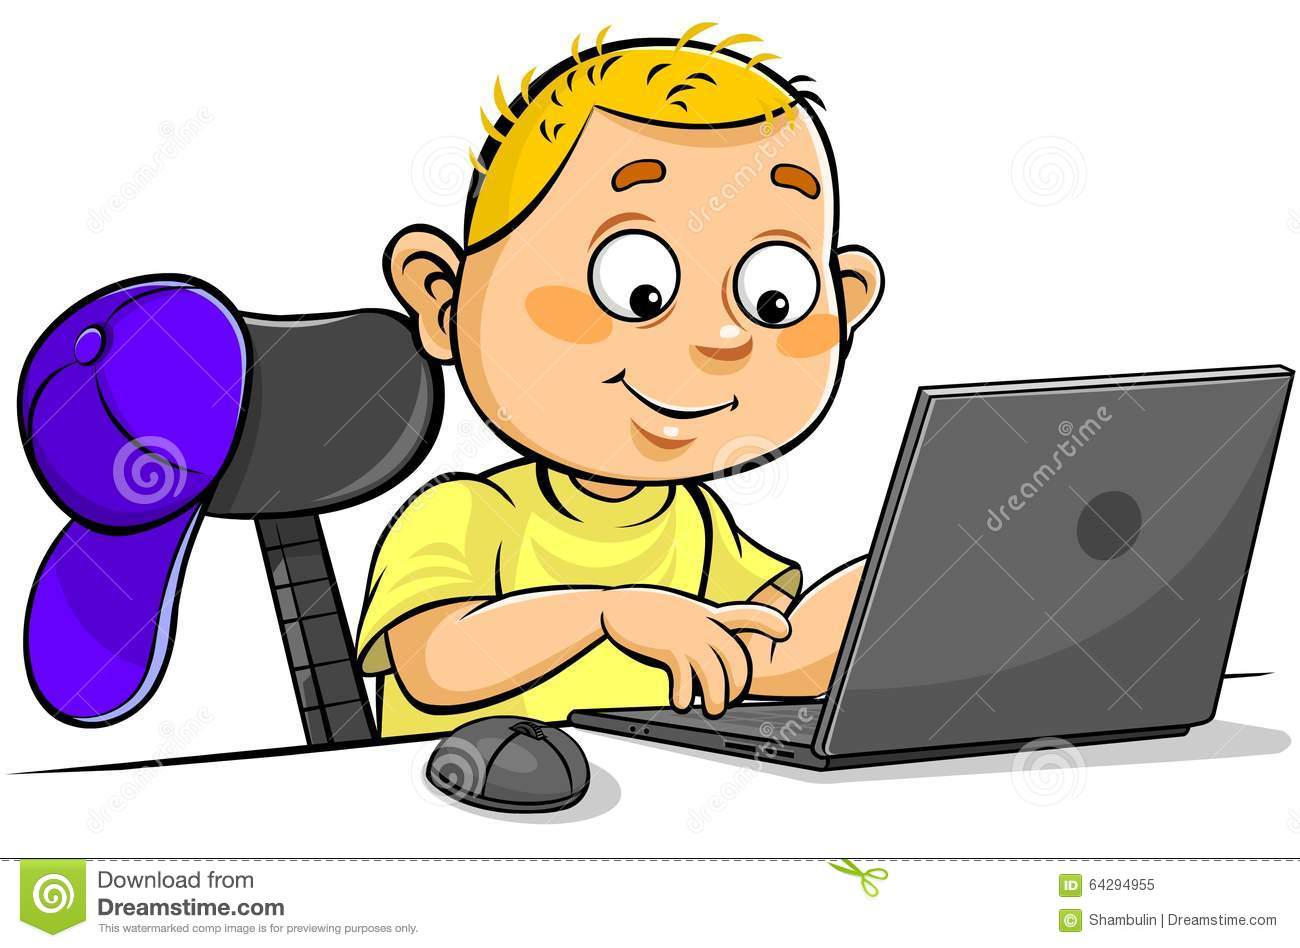 Boys Sitting In Front Of Computer Screen Playing Video